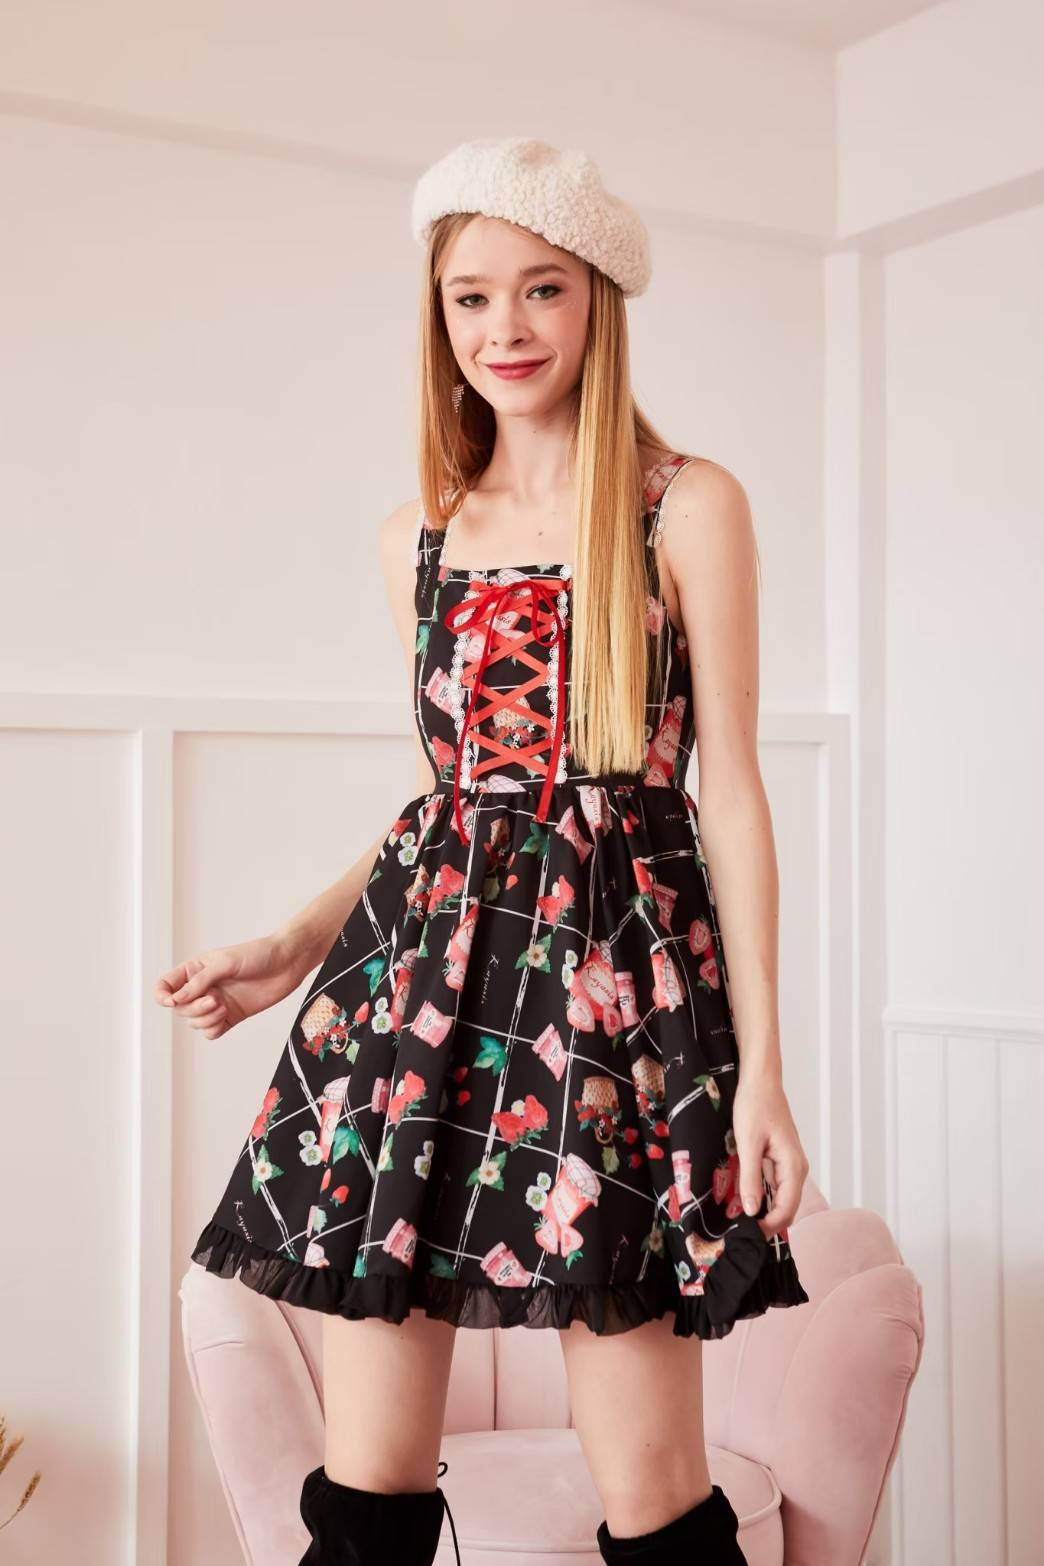 STW02 MY STRAWBERRY VOLUME SKIRT DRESS IN STOCK NOW